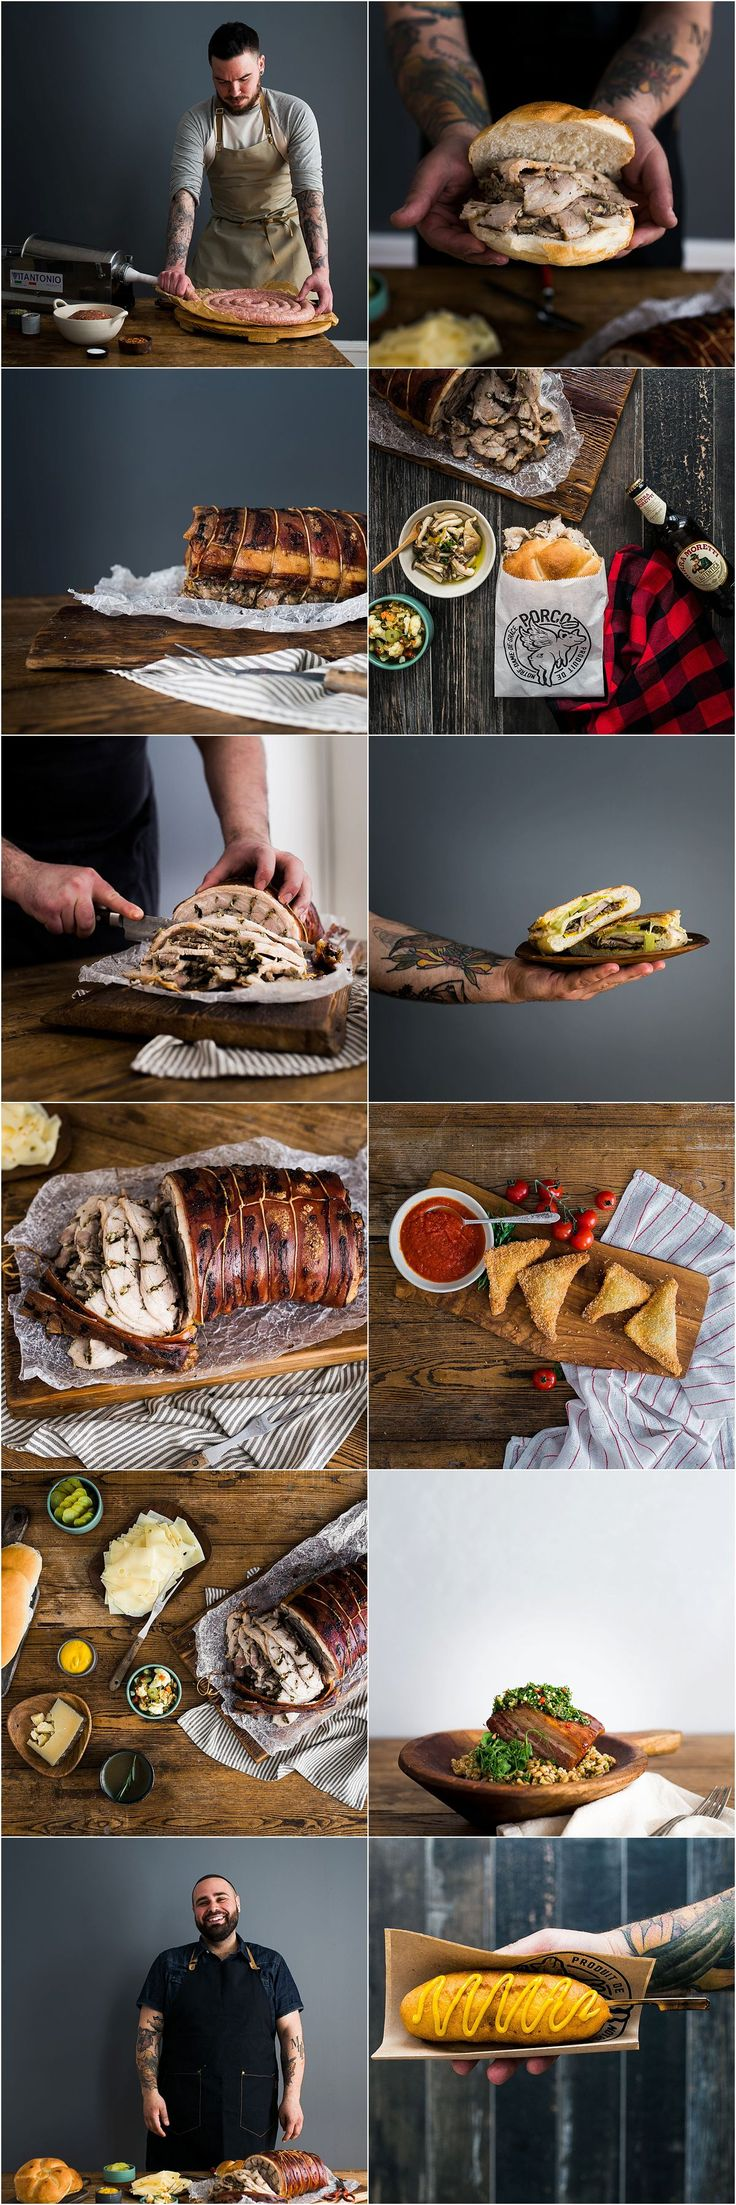 Montreal In-Studio Food Photography | Little & Wood | Montreal, Canada  In studio food photography, moody food photography, rustic food photography, sausage, porchetta, italian food, natural light photography